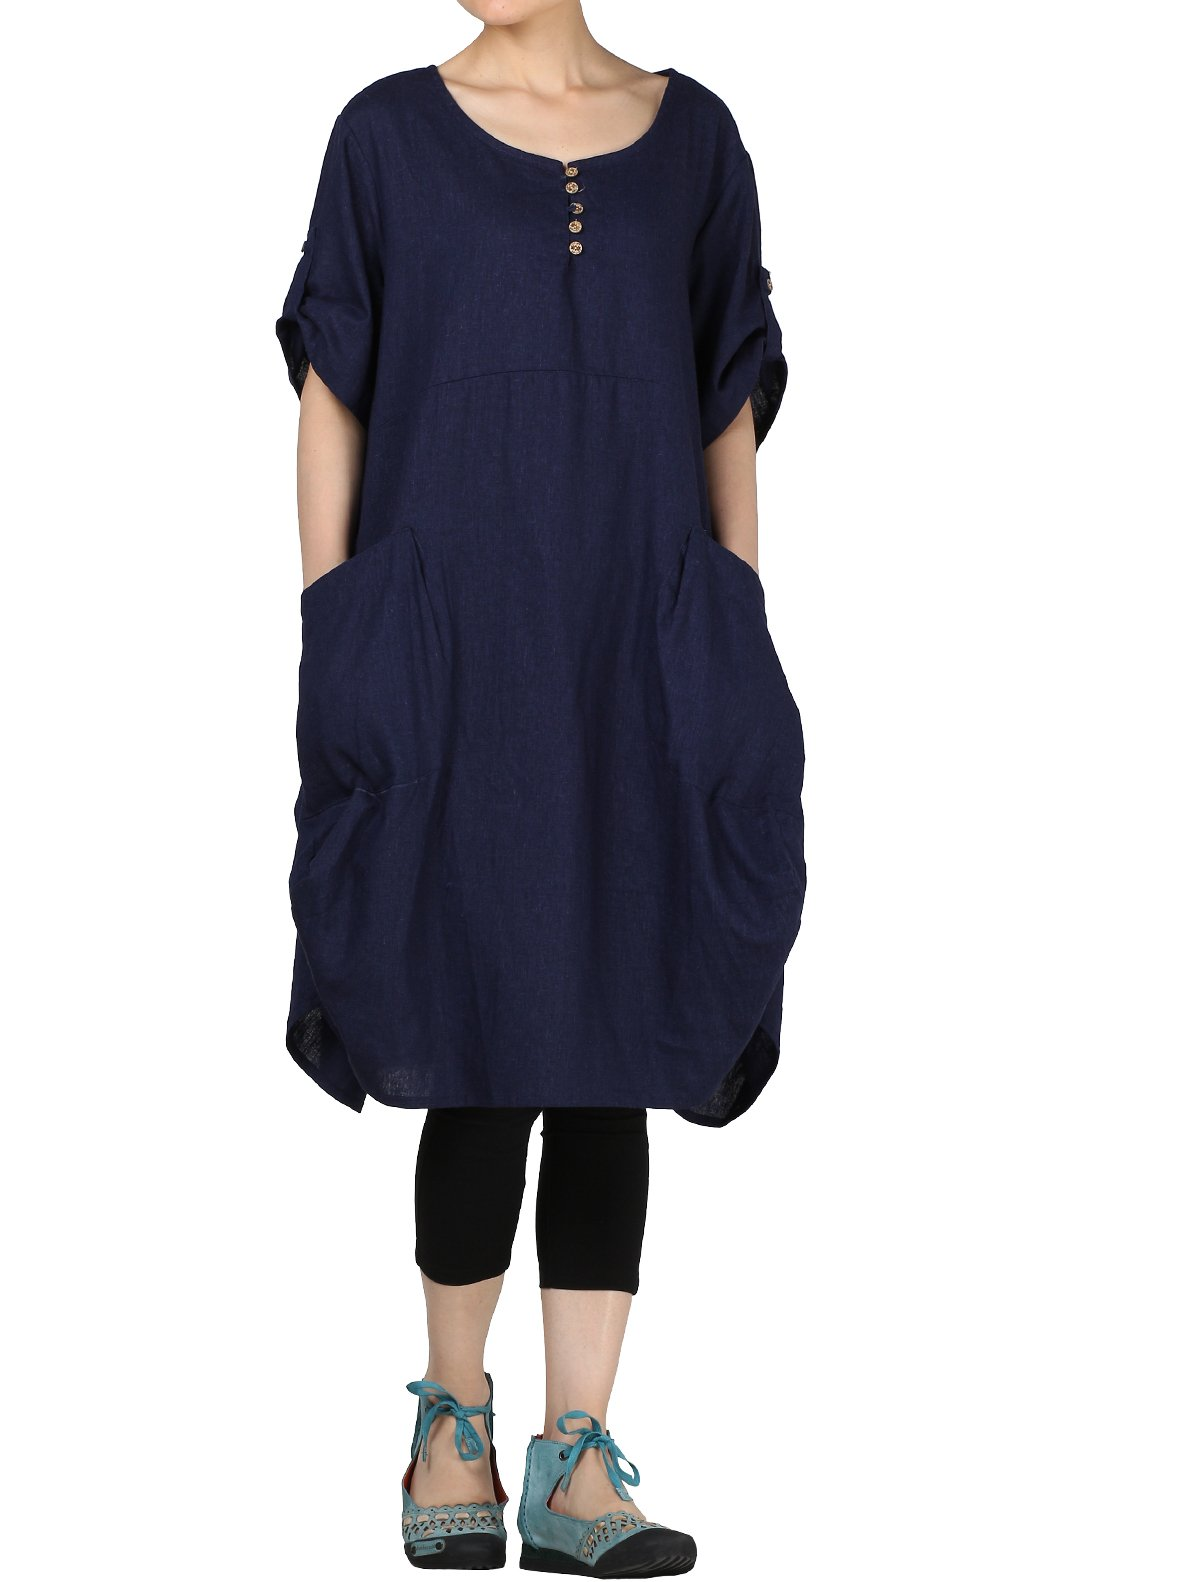 Mordenmiss Women's Summer Roll-up Sleeve Baggy Dress with Pockets 2XL Blue